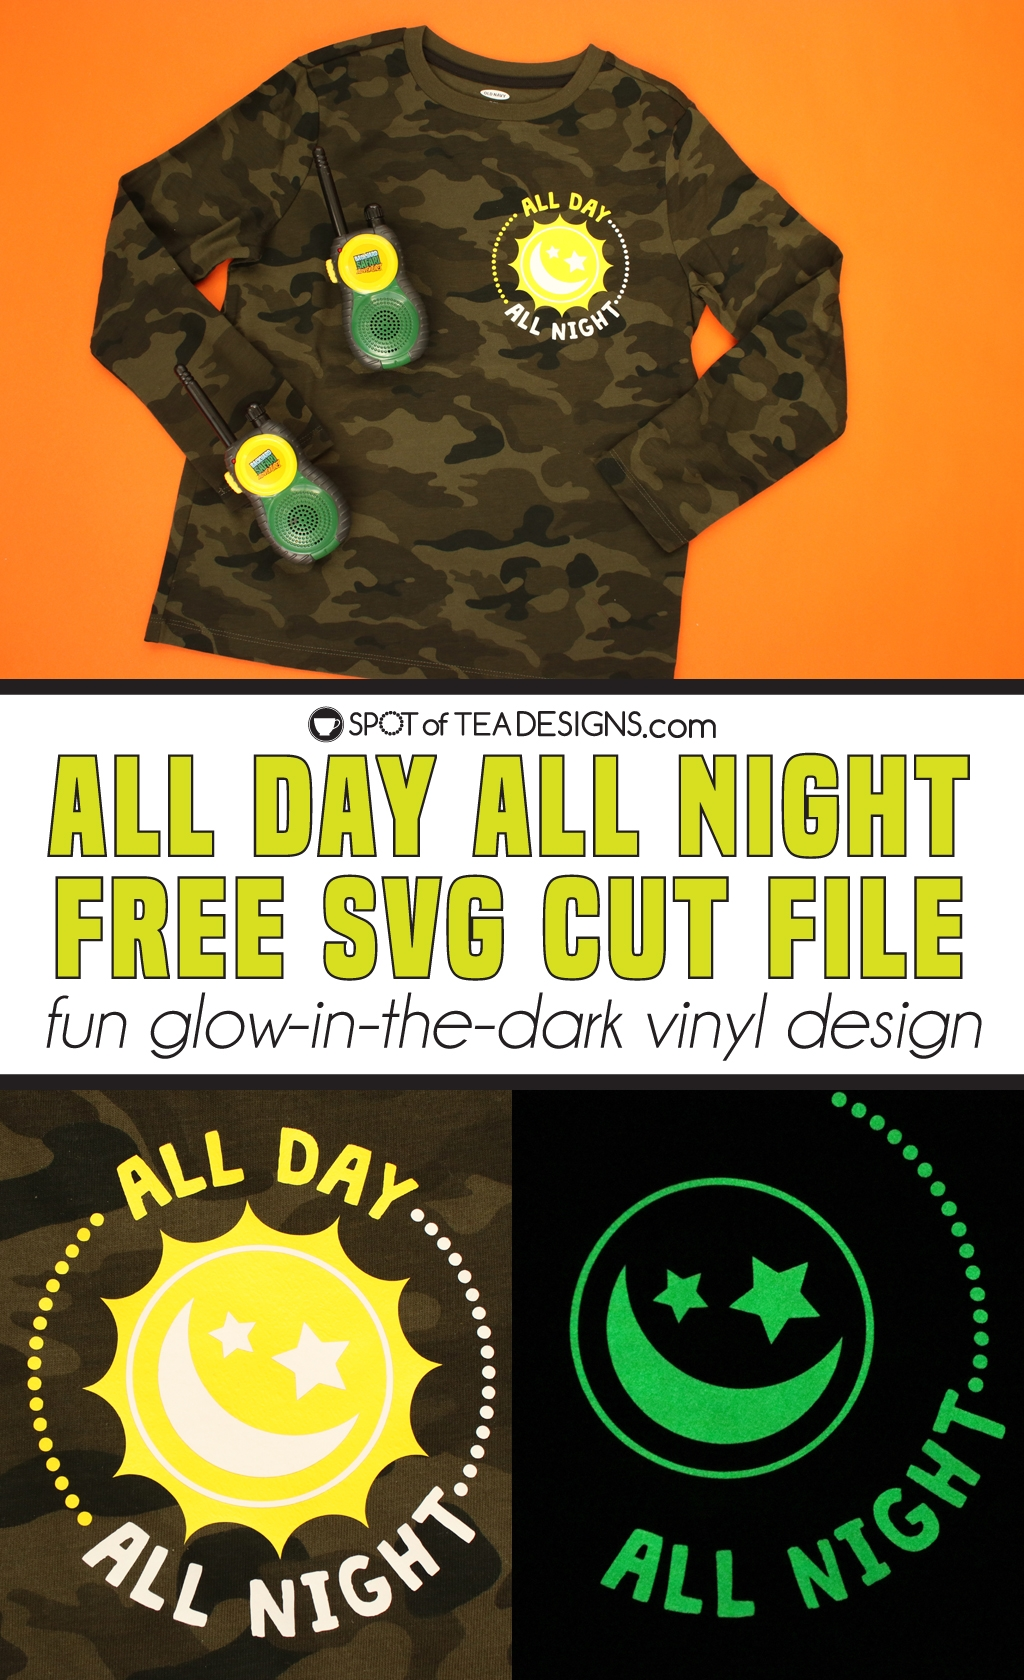 All Day All Night T-shirt - Free SVG Cut File | spotofteadesigns.com